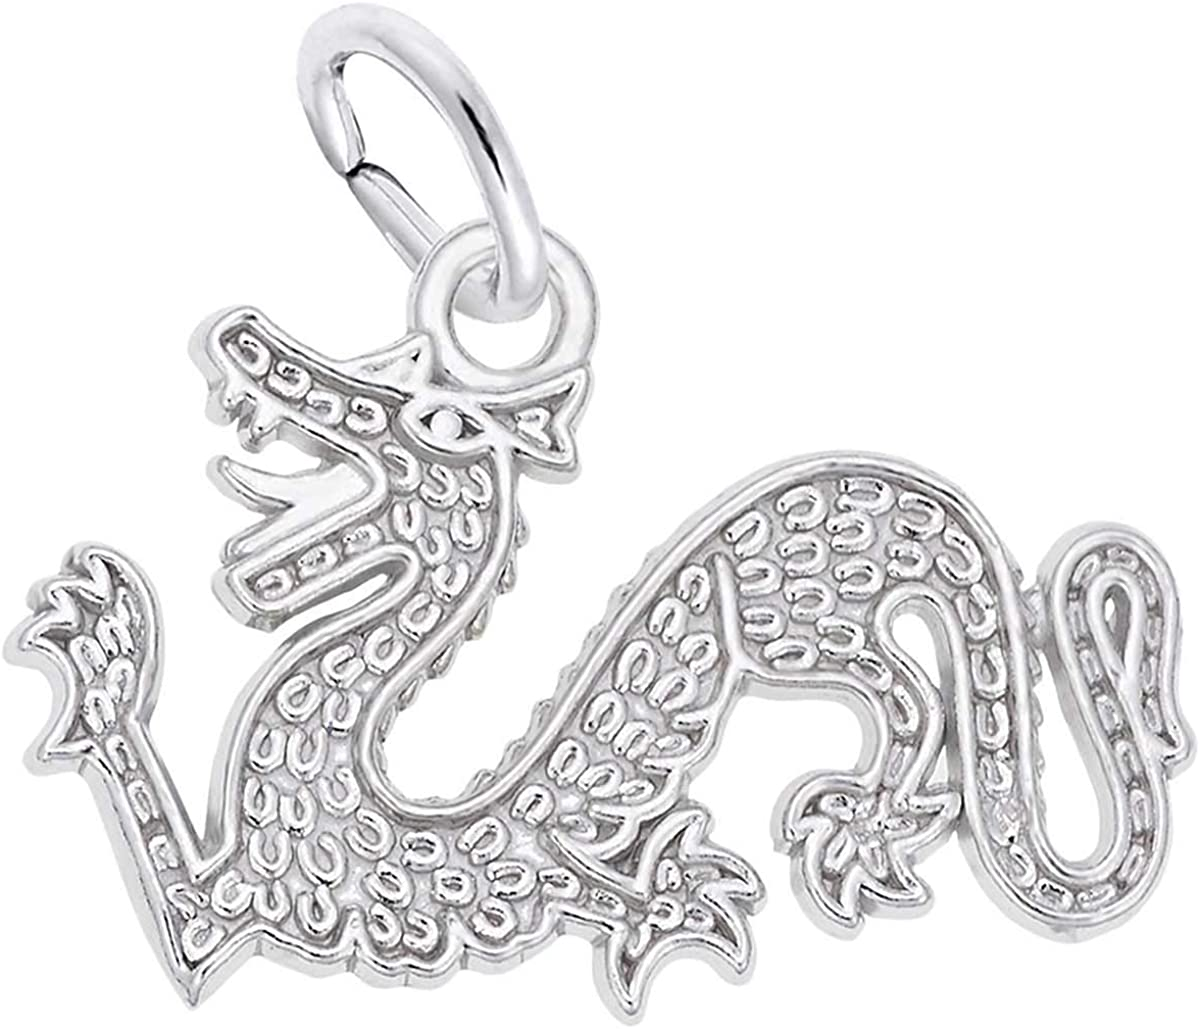 Rembrandt Charms Dragon Charm It is very popular New color